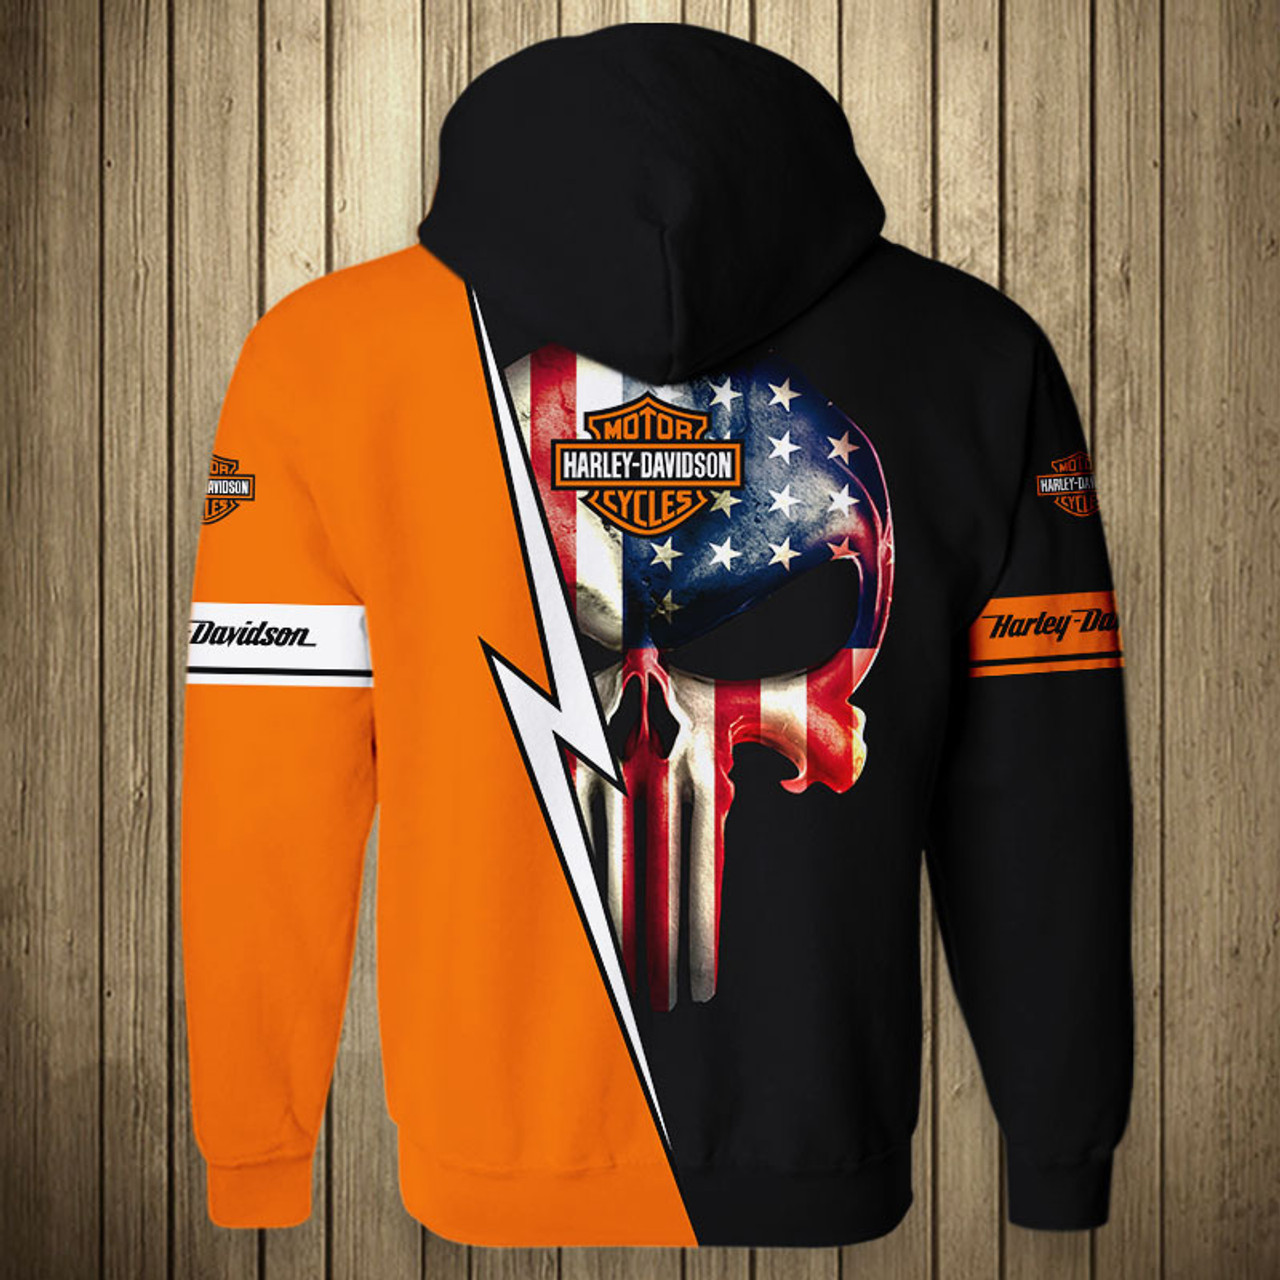 **(OFFICIAL-HARLEY-DAVIDSON-MOTORCYCLE-PULLOVER-HOODIES/CUSTOM-DETAILED-3D-GRAPHIC-PRINTED-CLASSIC-PATRIOTIC-PUNISHER-SKULL-DESIGN/OFFICIAL-CUSTOM-HARLEY-LOGOS & OFFICIAL-CLASSIC-BLACK & ORANGE-HARLEY-COLORS/PREMIUM-HARLEY-RIDING-PULLOVER-HOODIES)**